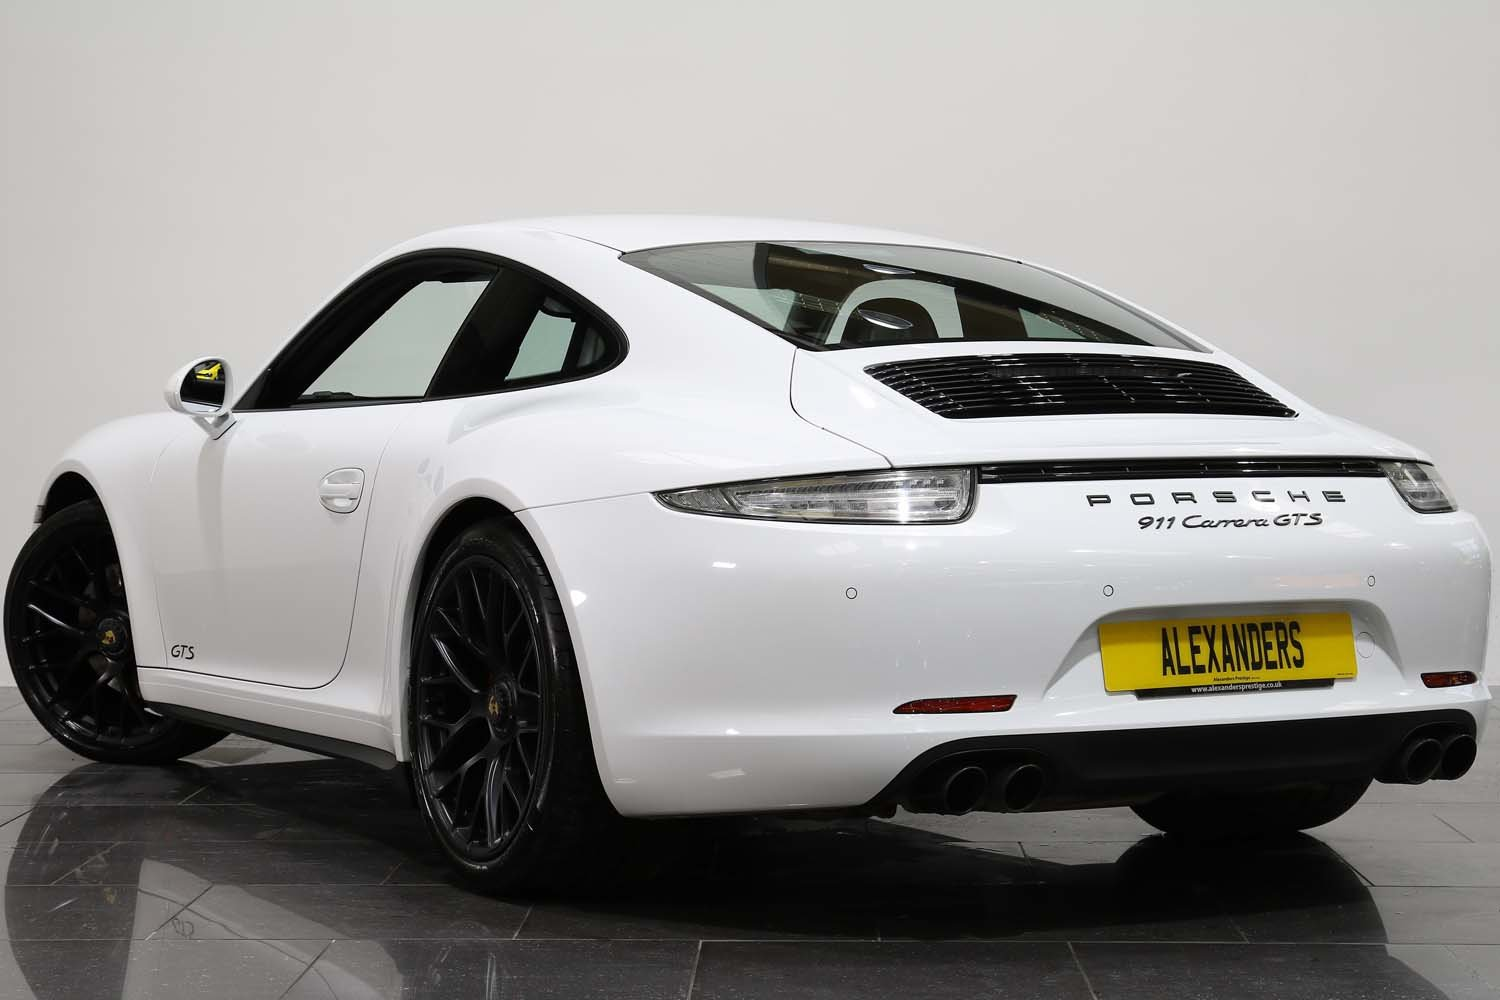 2015 15 65 PORSCHE 911 CARRERA GTS 3.8 [991] PDK For Sale (picture 3 of 6)